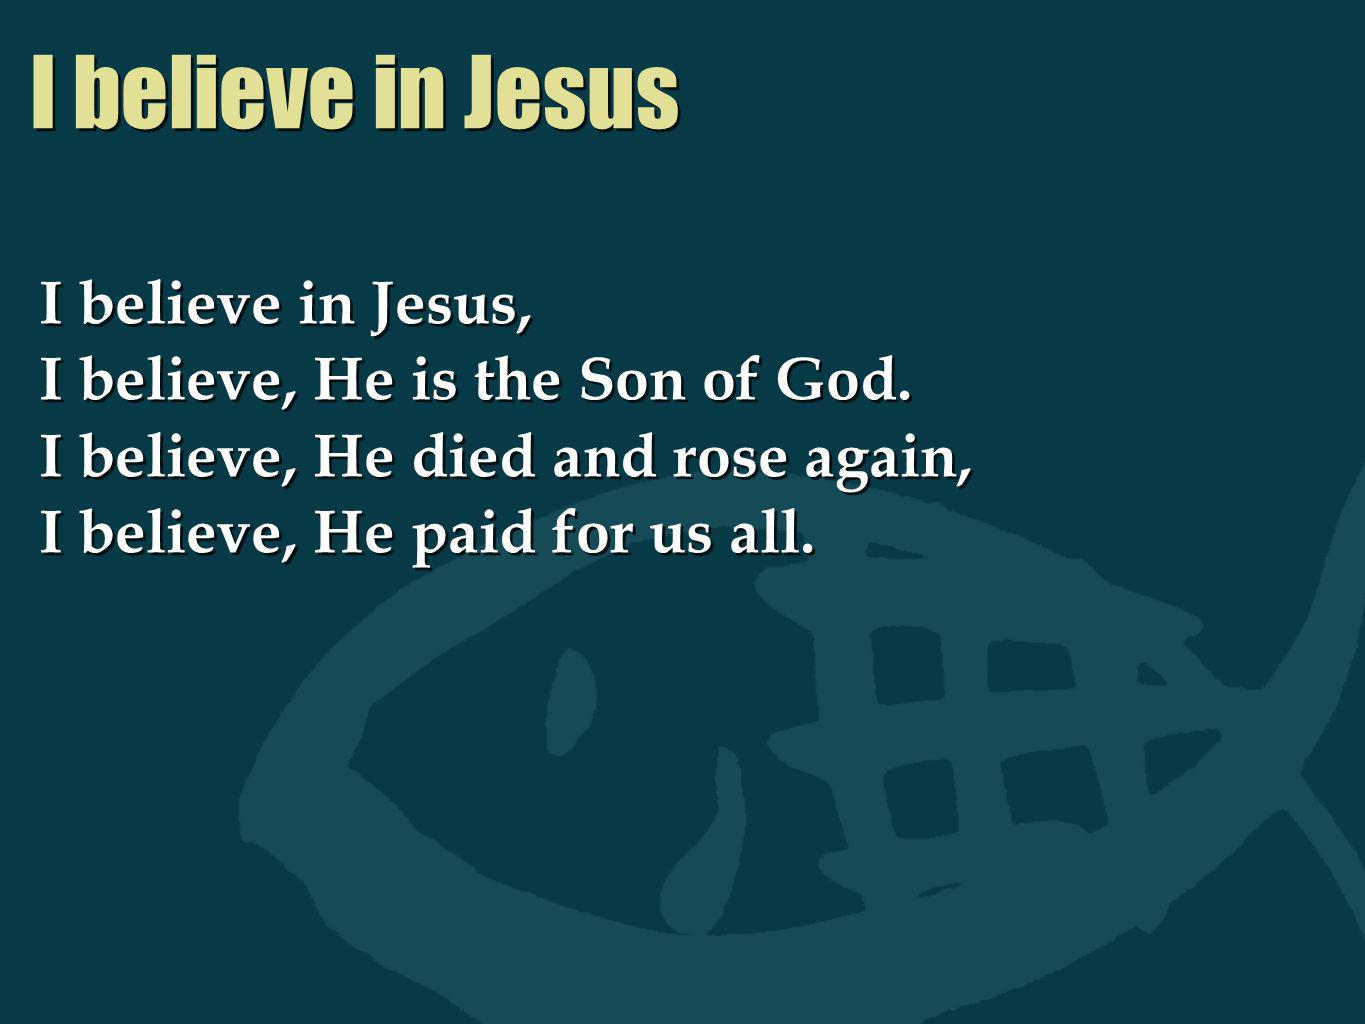 I believe in Jesus I believe in Jesus, I believe, He is the Son of God. I believe, He died and rose again, I believe, He paid for us all. I believe in